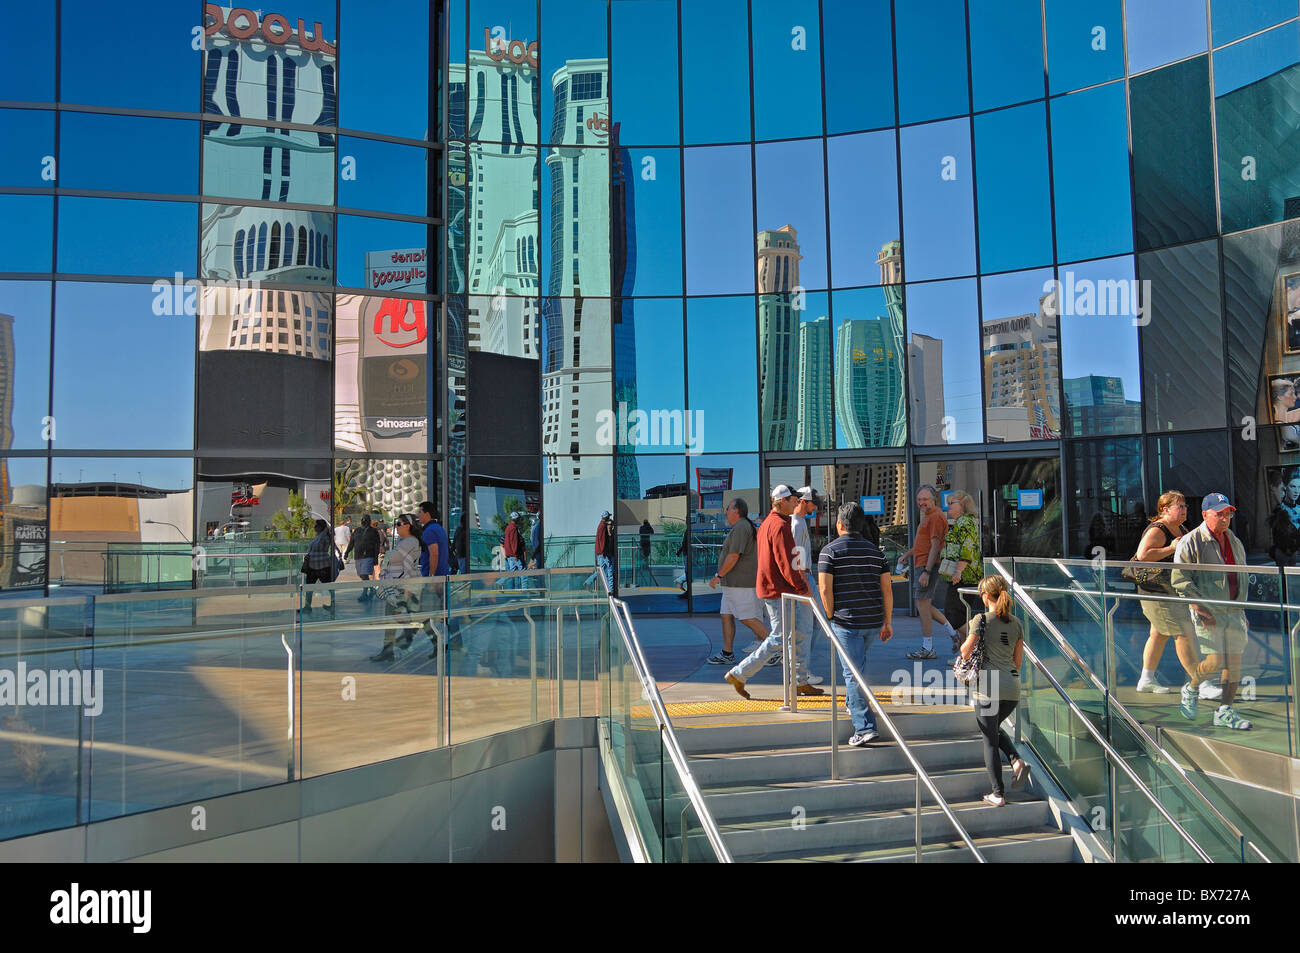 Shoppers at the Shopping Area of City Center in Las Vegas, Nevada, United States of America - Stock Image